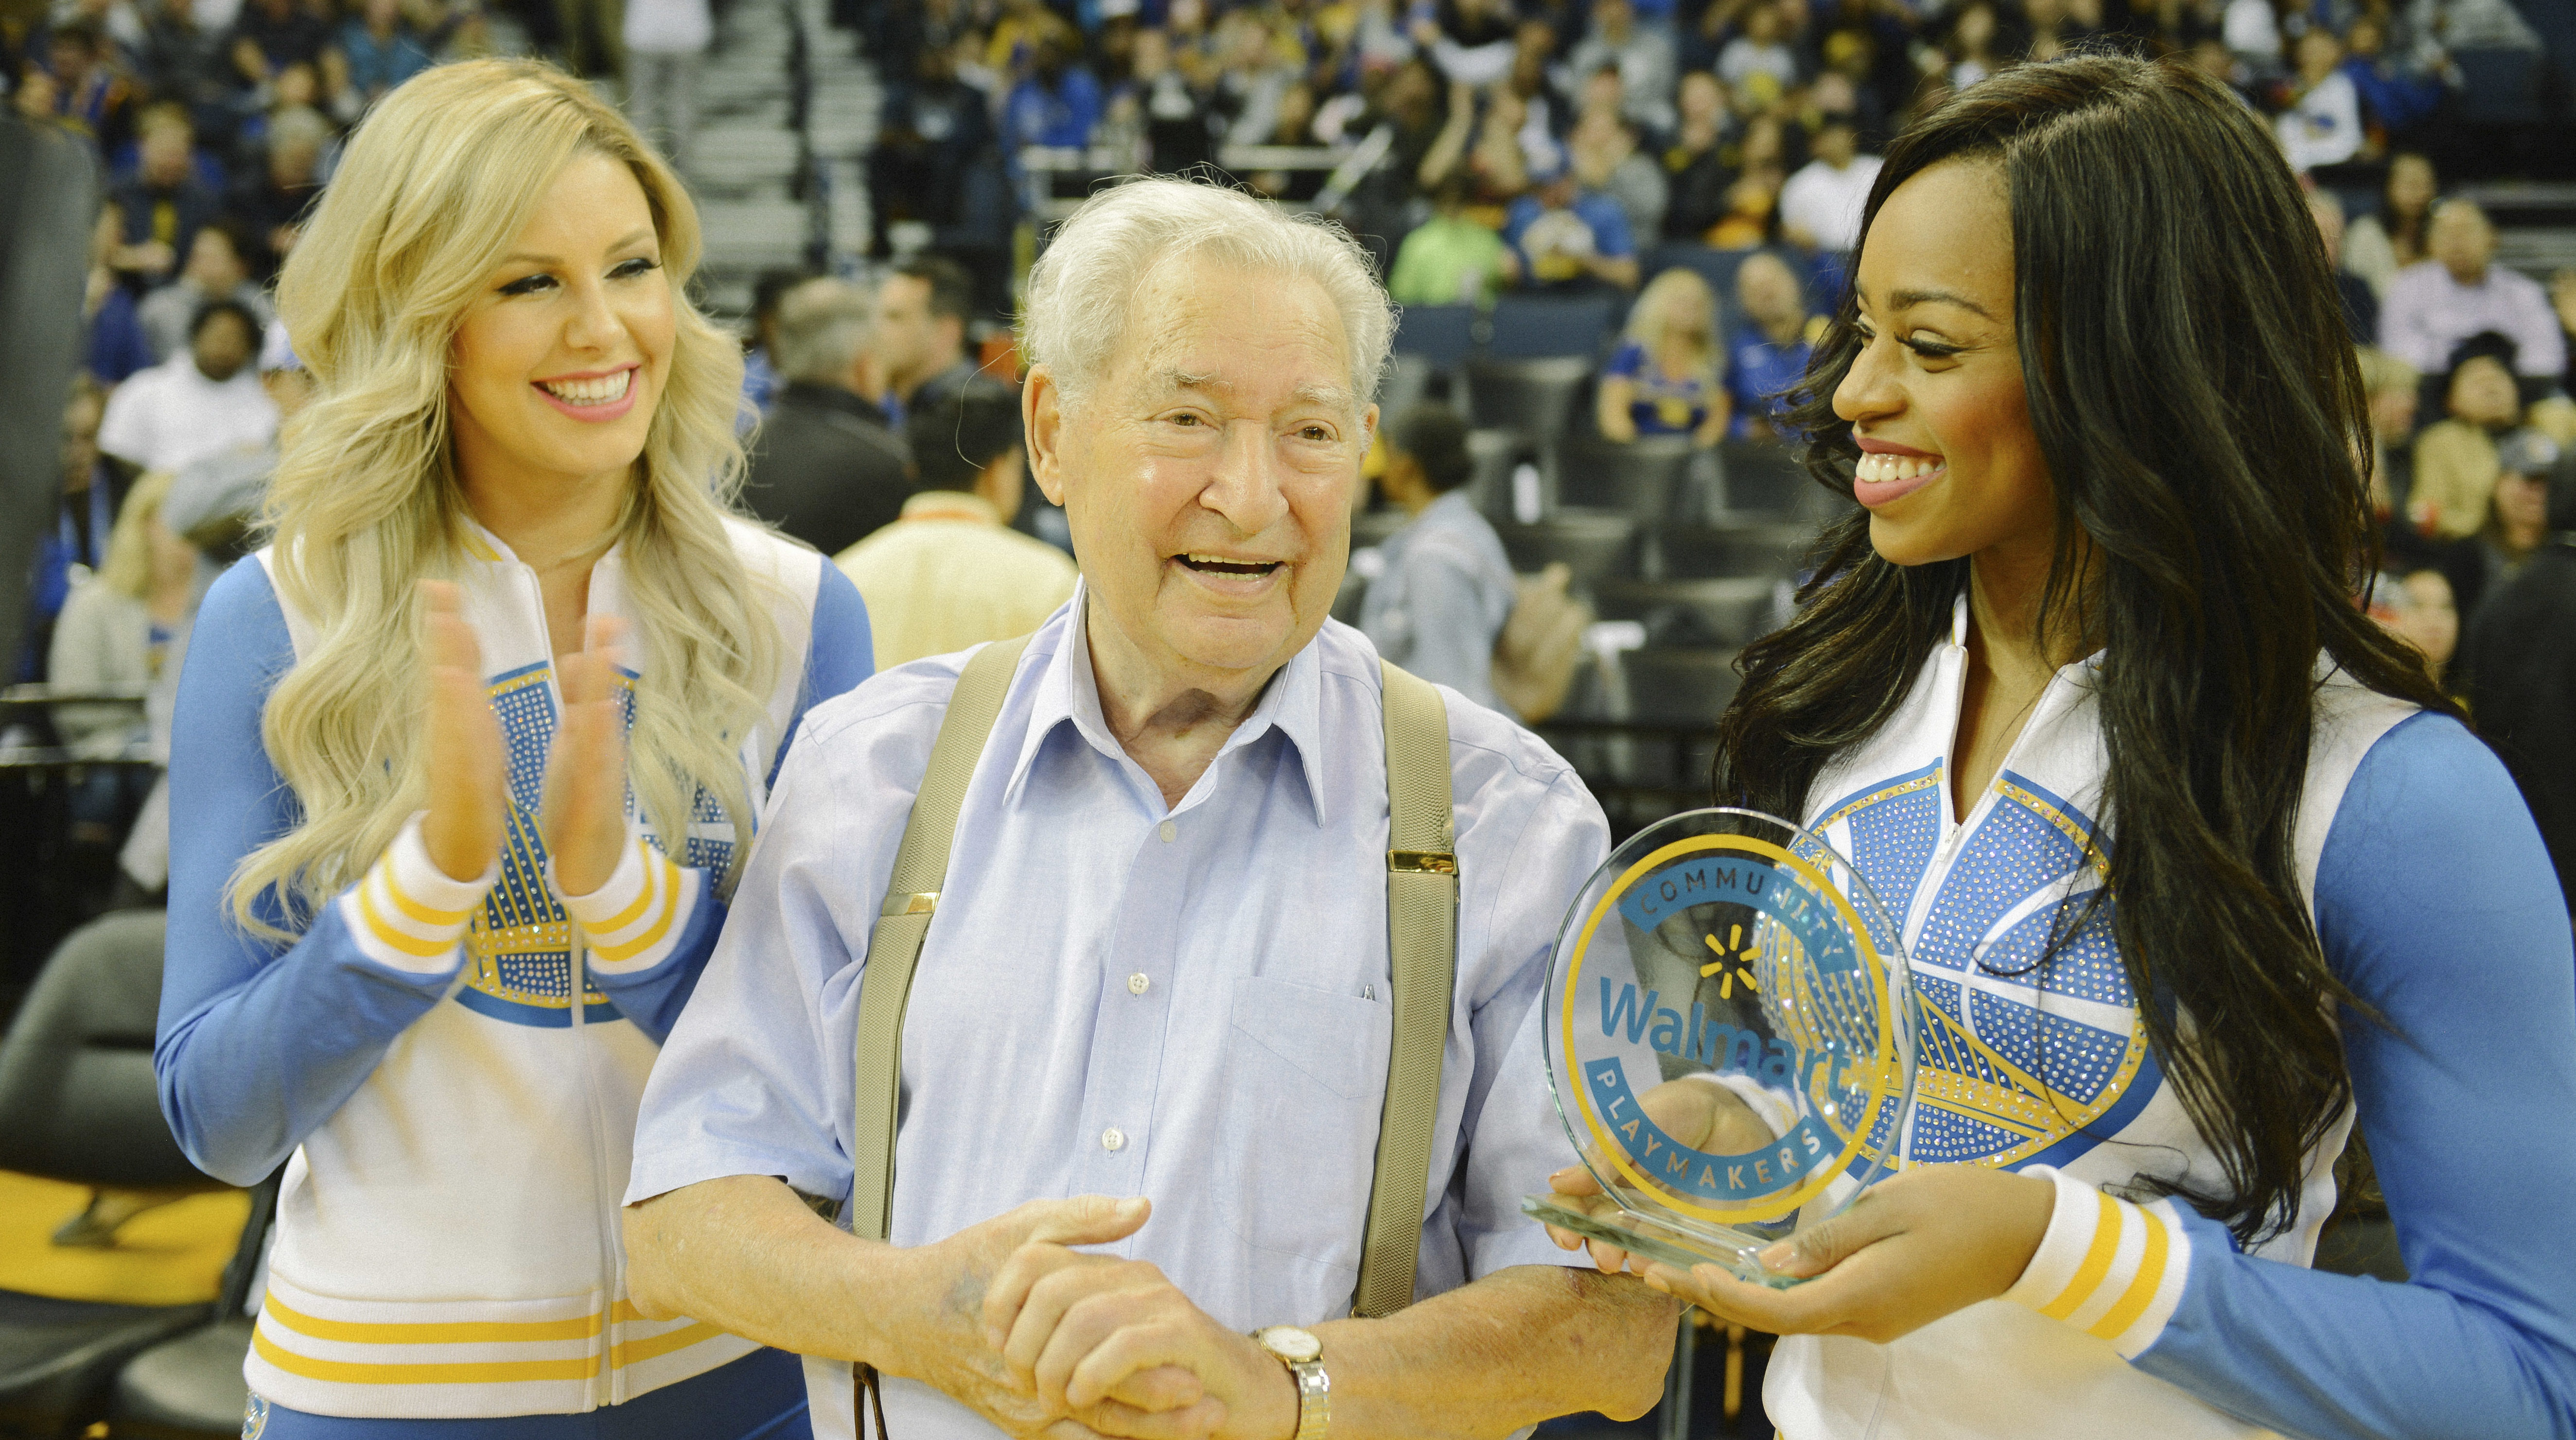 At Golden State Warriors'  Jewish Heritage Night during Hanukkah, Piedmont resident Arthur Weil, 92, was presented with the Walmart Community Playmaker Award.